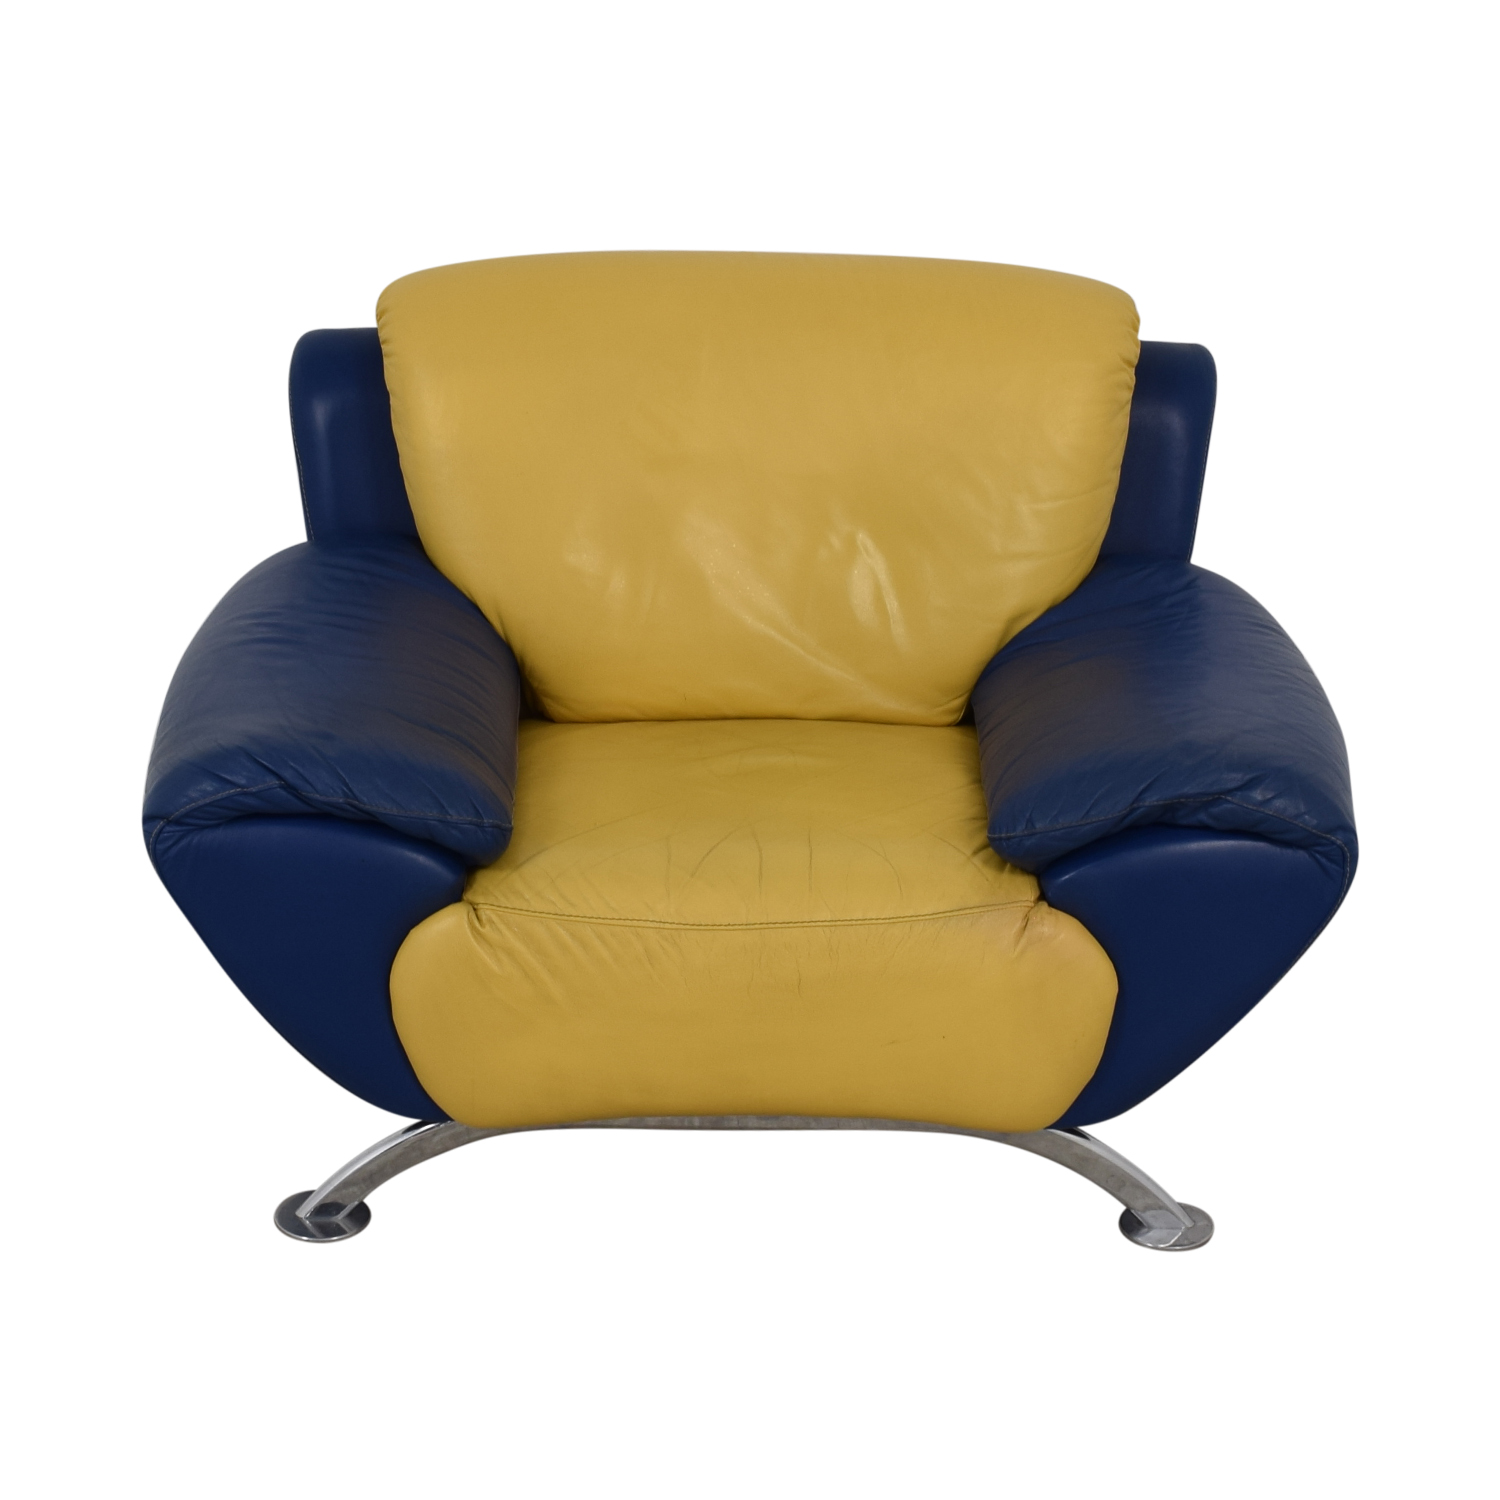 Satis Modern Yellow And Blue Leather Accent Chair Price